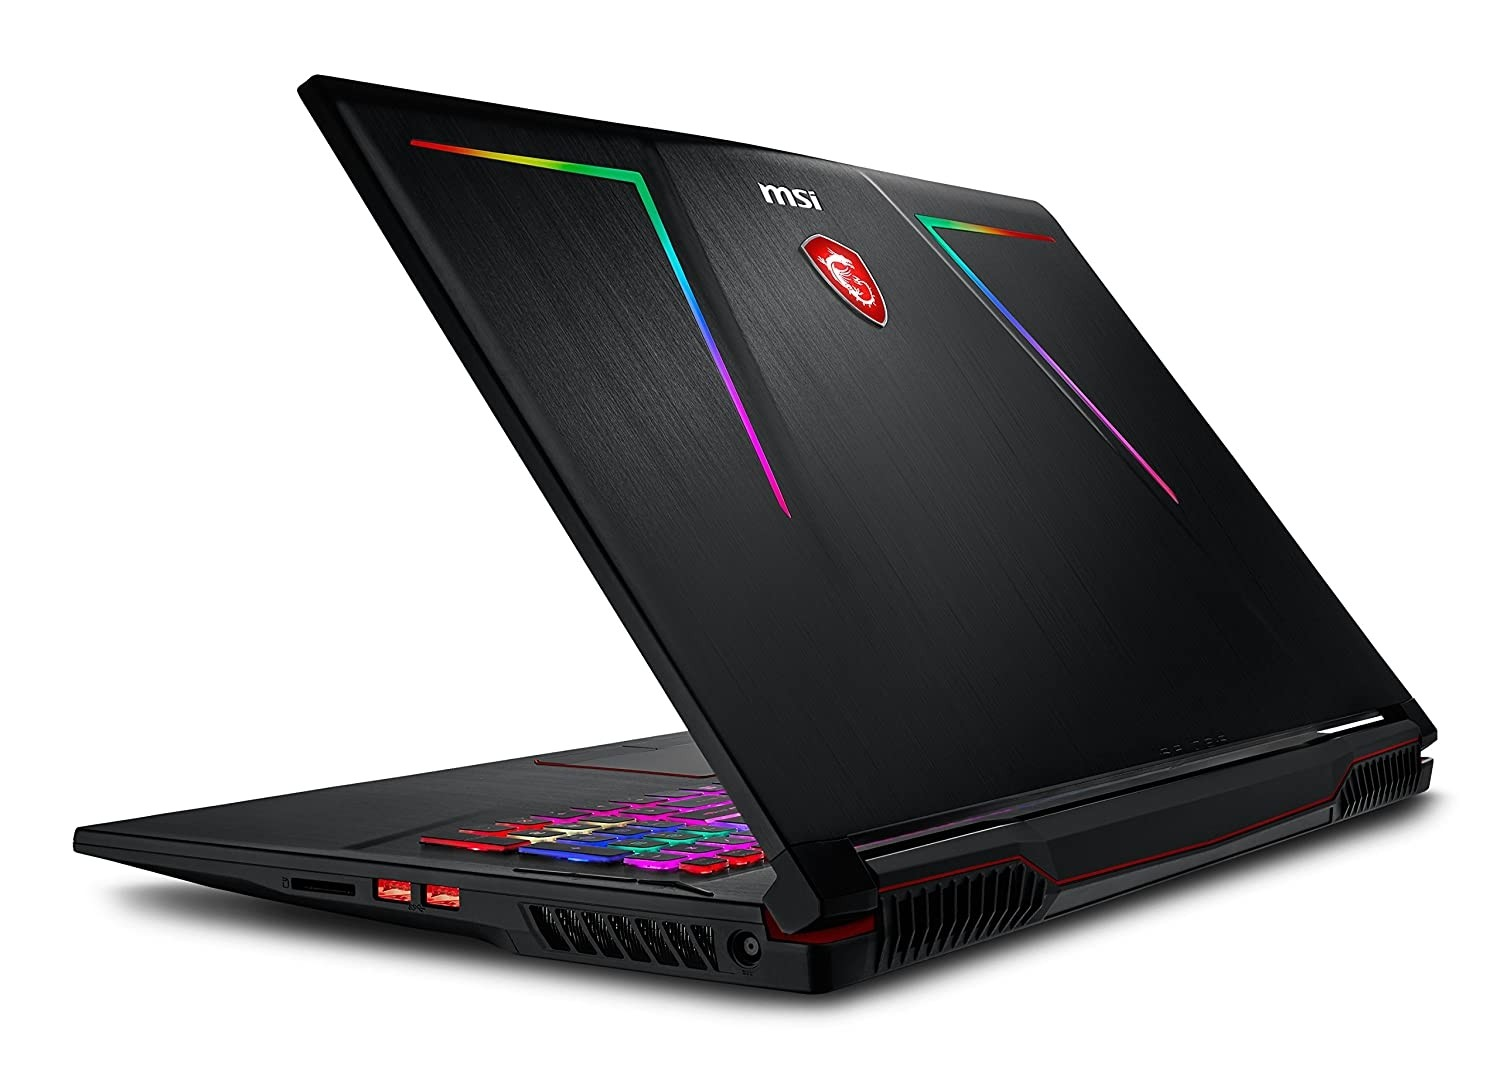 Refurbished laptops & desktops - MSI GE CORE I7 8TH GEN - (16 GB/1 TB HDD/512 GB SSD/WINDOWS 10 HOME/8 GB GRAPHICS) GE73 RAIDER RGB 8RF-024IN GAMING LAPTOP